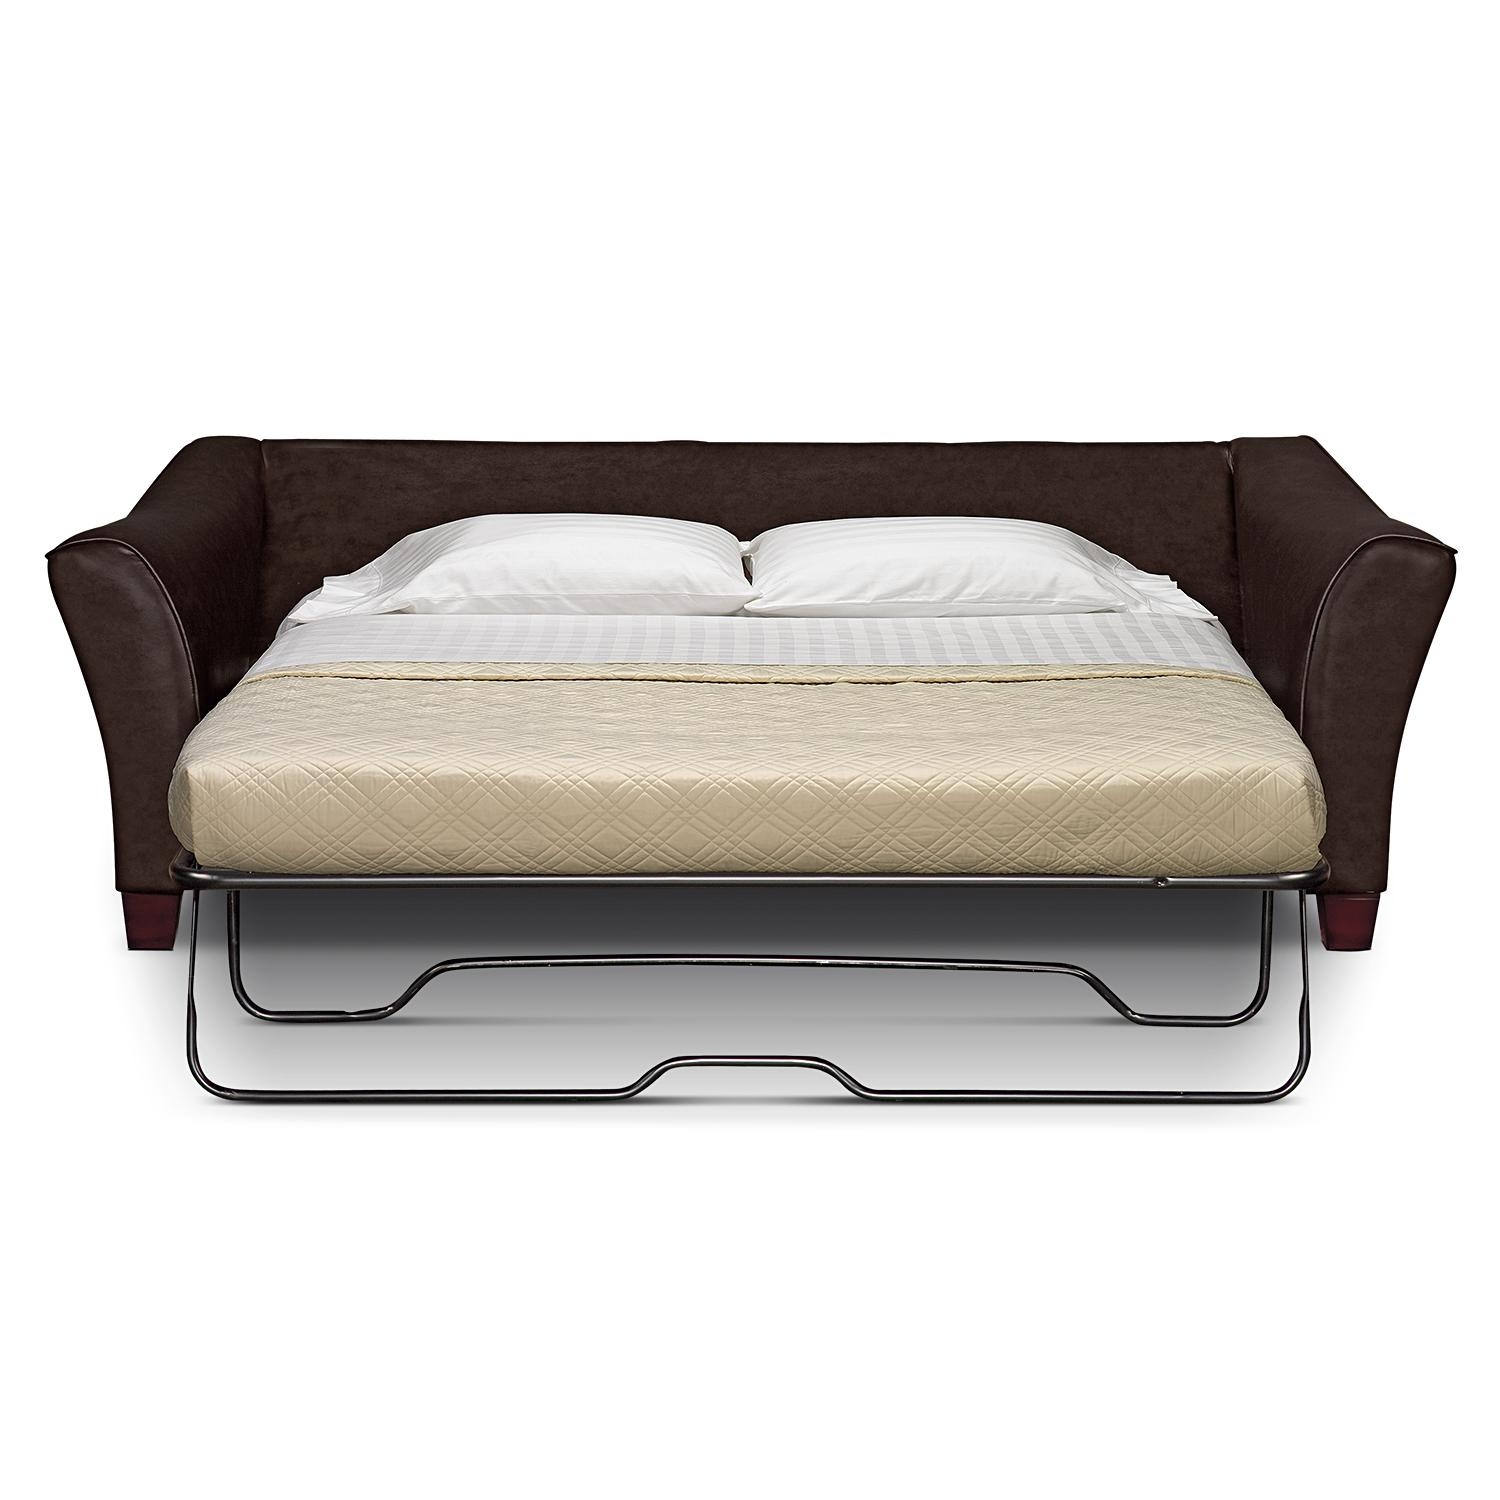 Sheets For Sofa Bed Mattress | Sofa Gallery | Kengire Pertaining To Sofa Sleeper Sheets (Image 8 of 20)